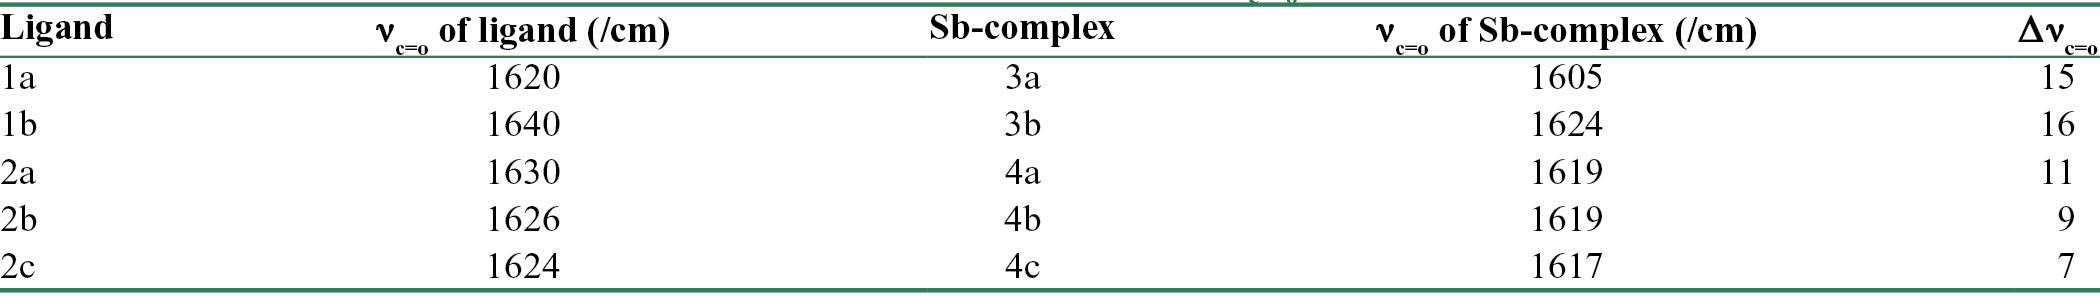 Table 2: The ν<sub>c = o</sub> values (stretching frequencies, /cm) of hydroxypyranone (1a-b) and hydroxypyridinone (2a-c) ligands and their corresponding antimony (V) complexes (3a-b and 4a-c) (Δν<sub>c = o</sub>=variations in C = O stretching frequencies)